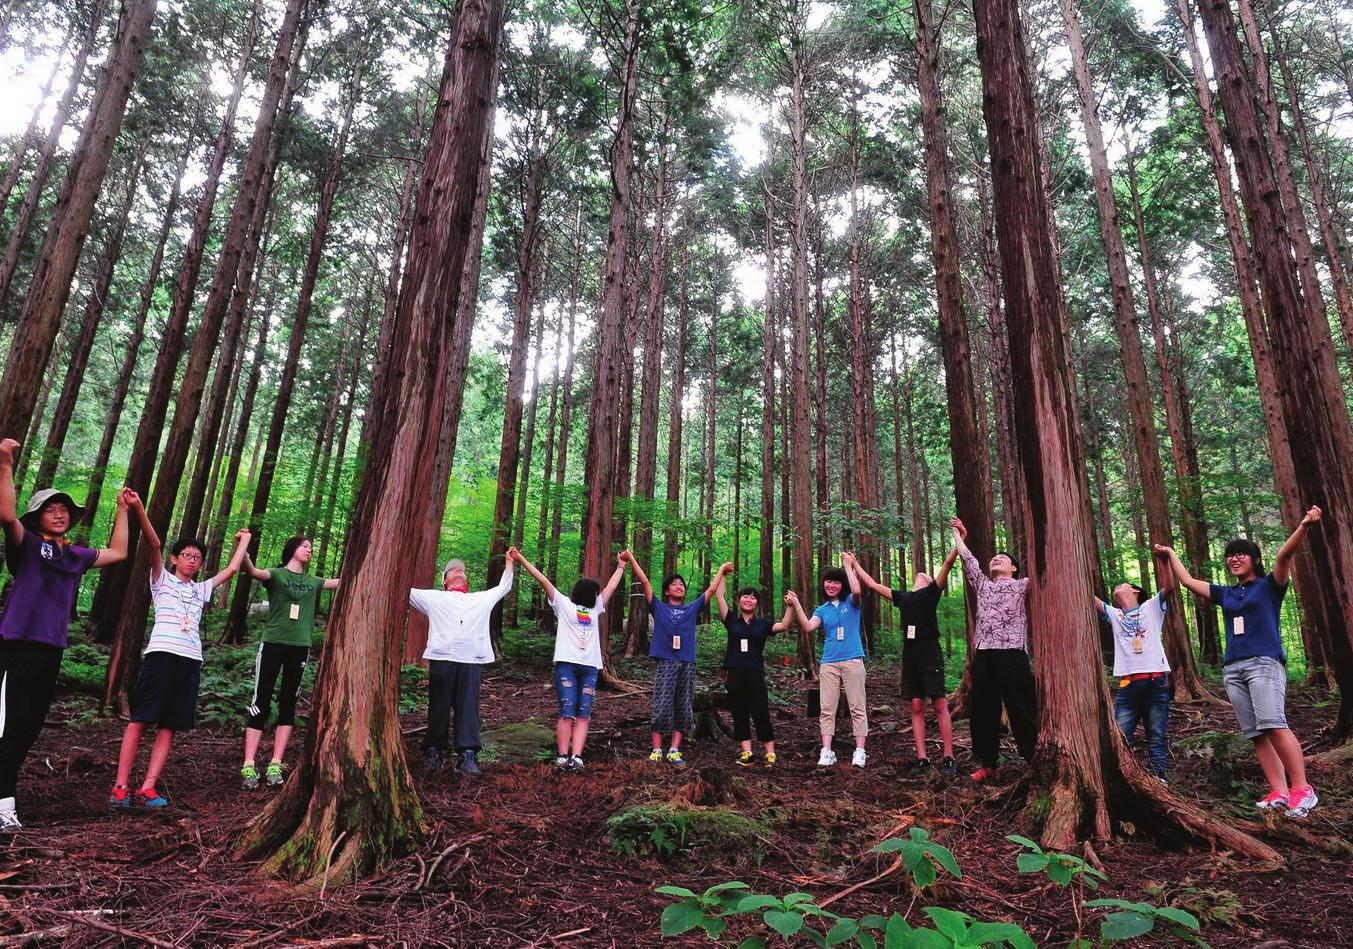 Students soak up the fragrance from retinispora trees in a local forest.